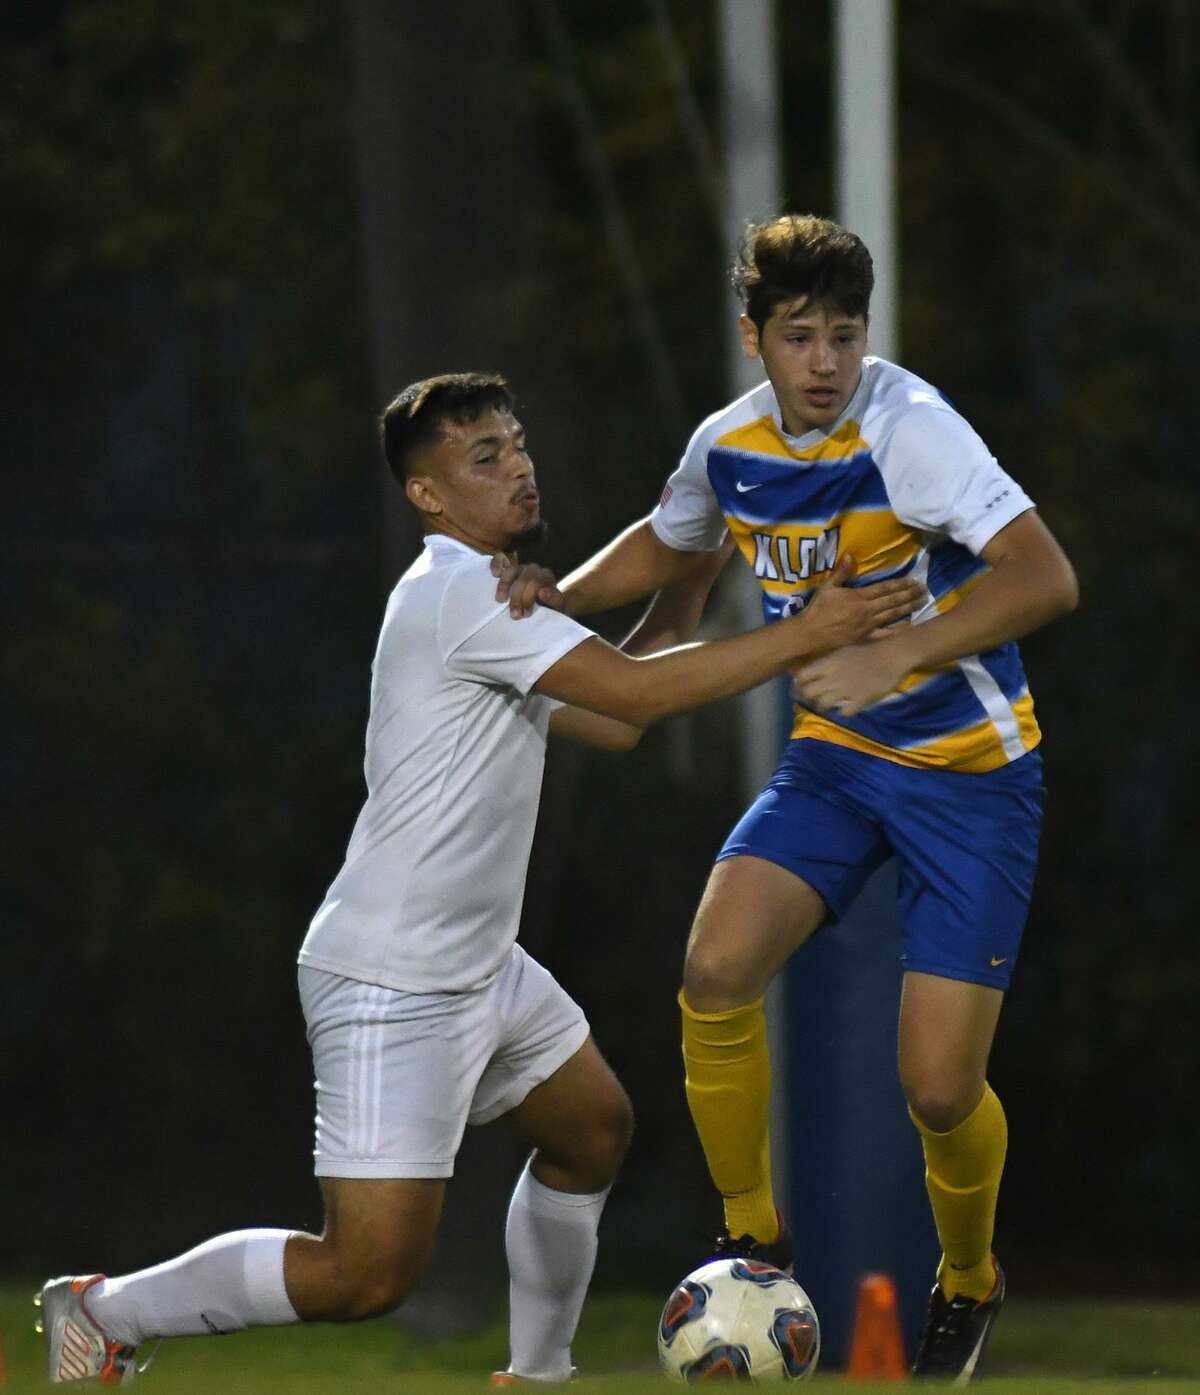 Klein junior defender Giuliano Maceroni, right, works for the ball against Westfield senior midfielder Jose Alarcon during the first half of their Region II-6A Bi-District Soccer Playoff match at Klein High School on March 28, 2019.